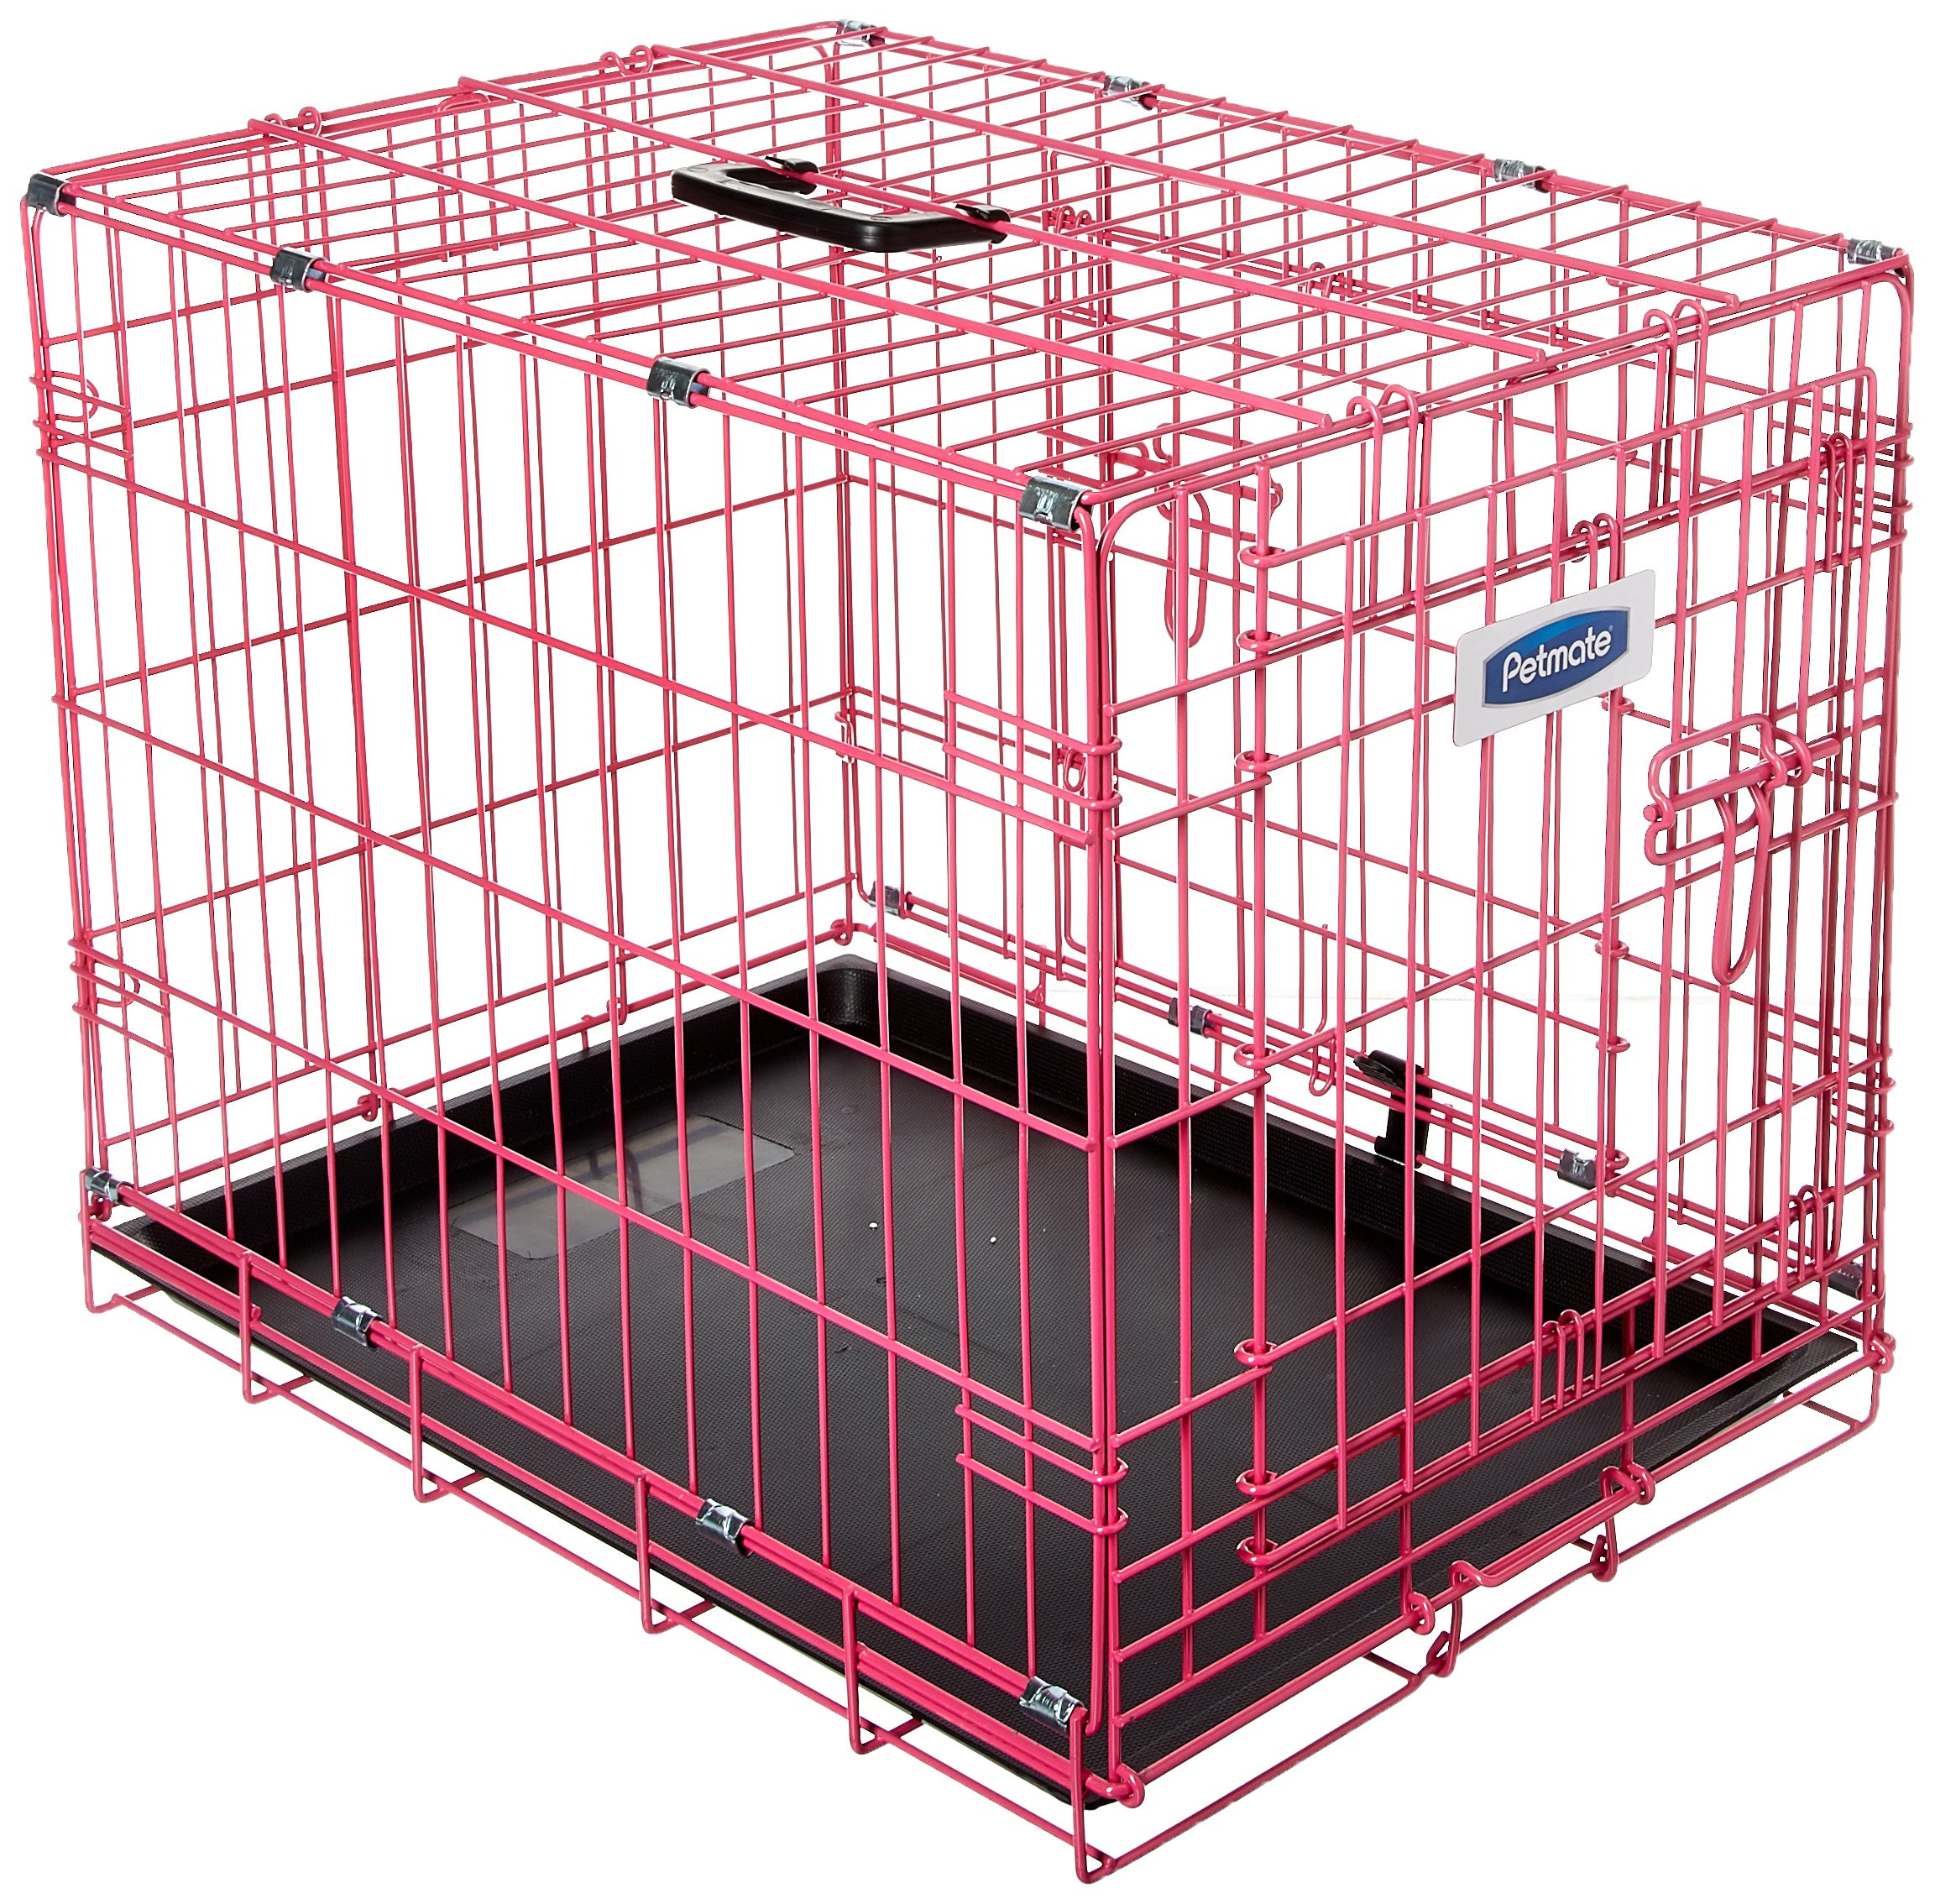 Petmate 21929 Puppy 2 Door Training Retreat, 24-Inch, Pink by Petmate